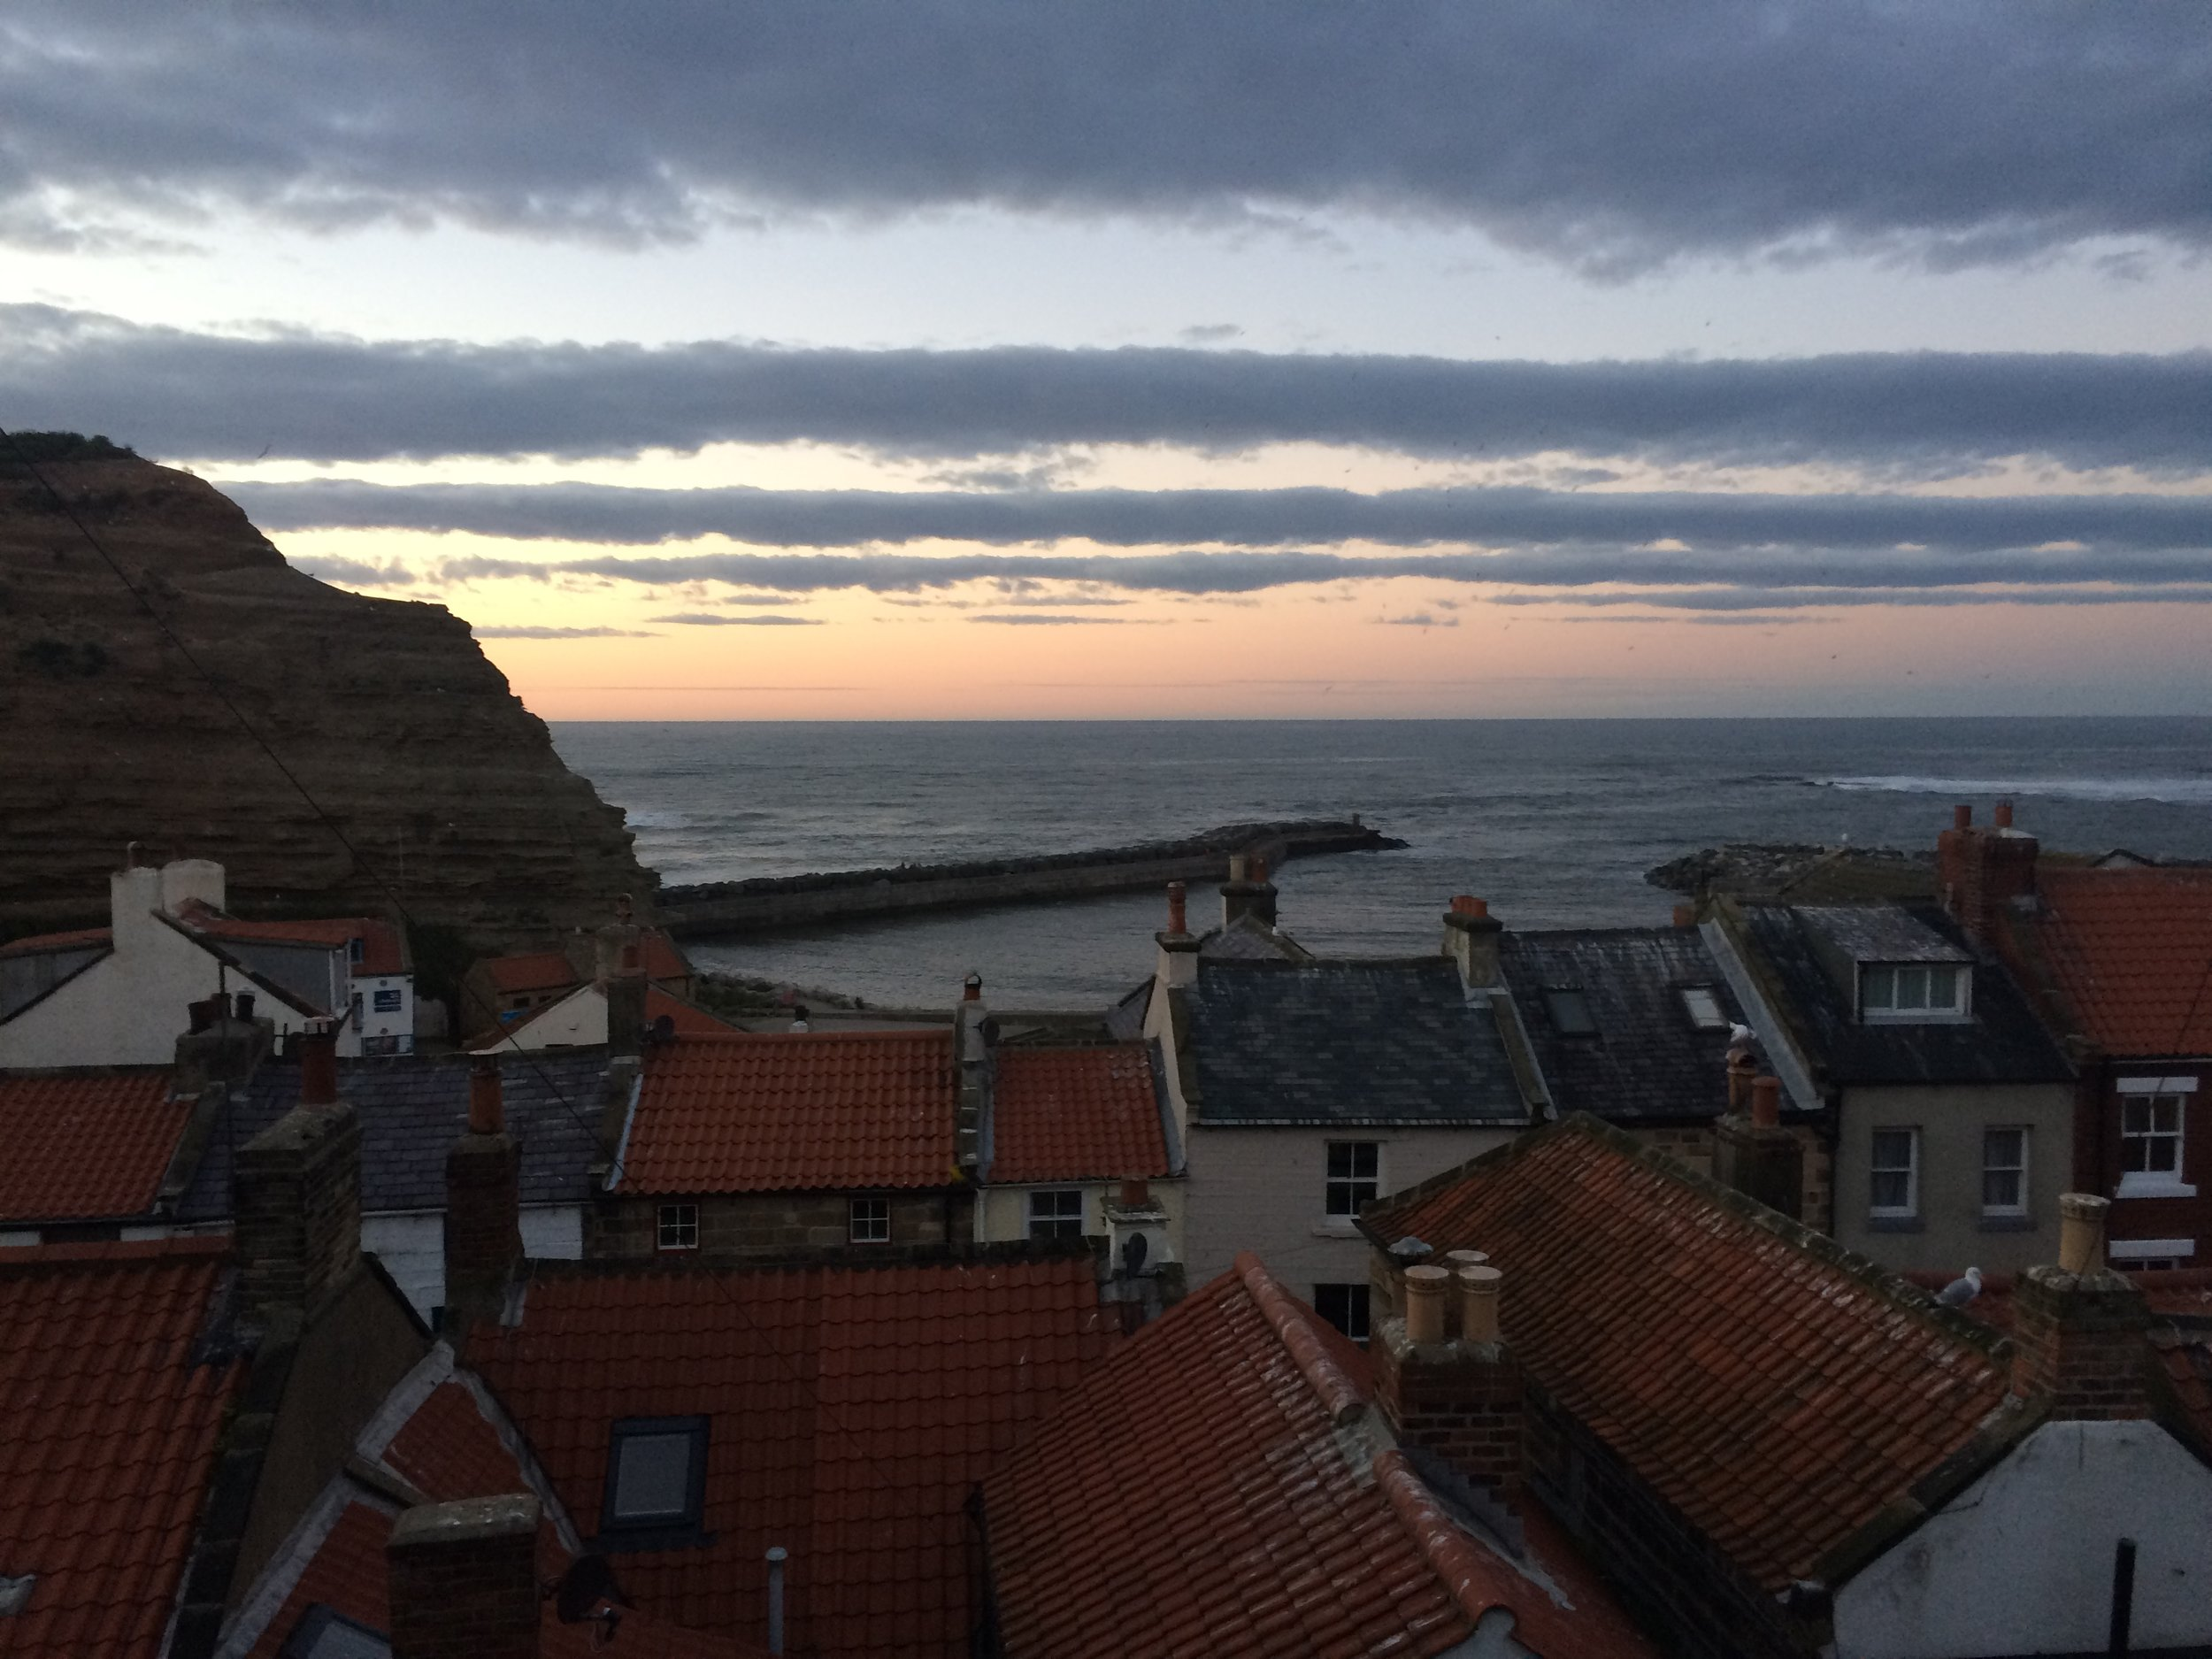 Sunset over Staithes on the Summer solstice.